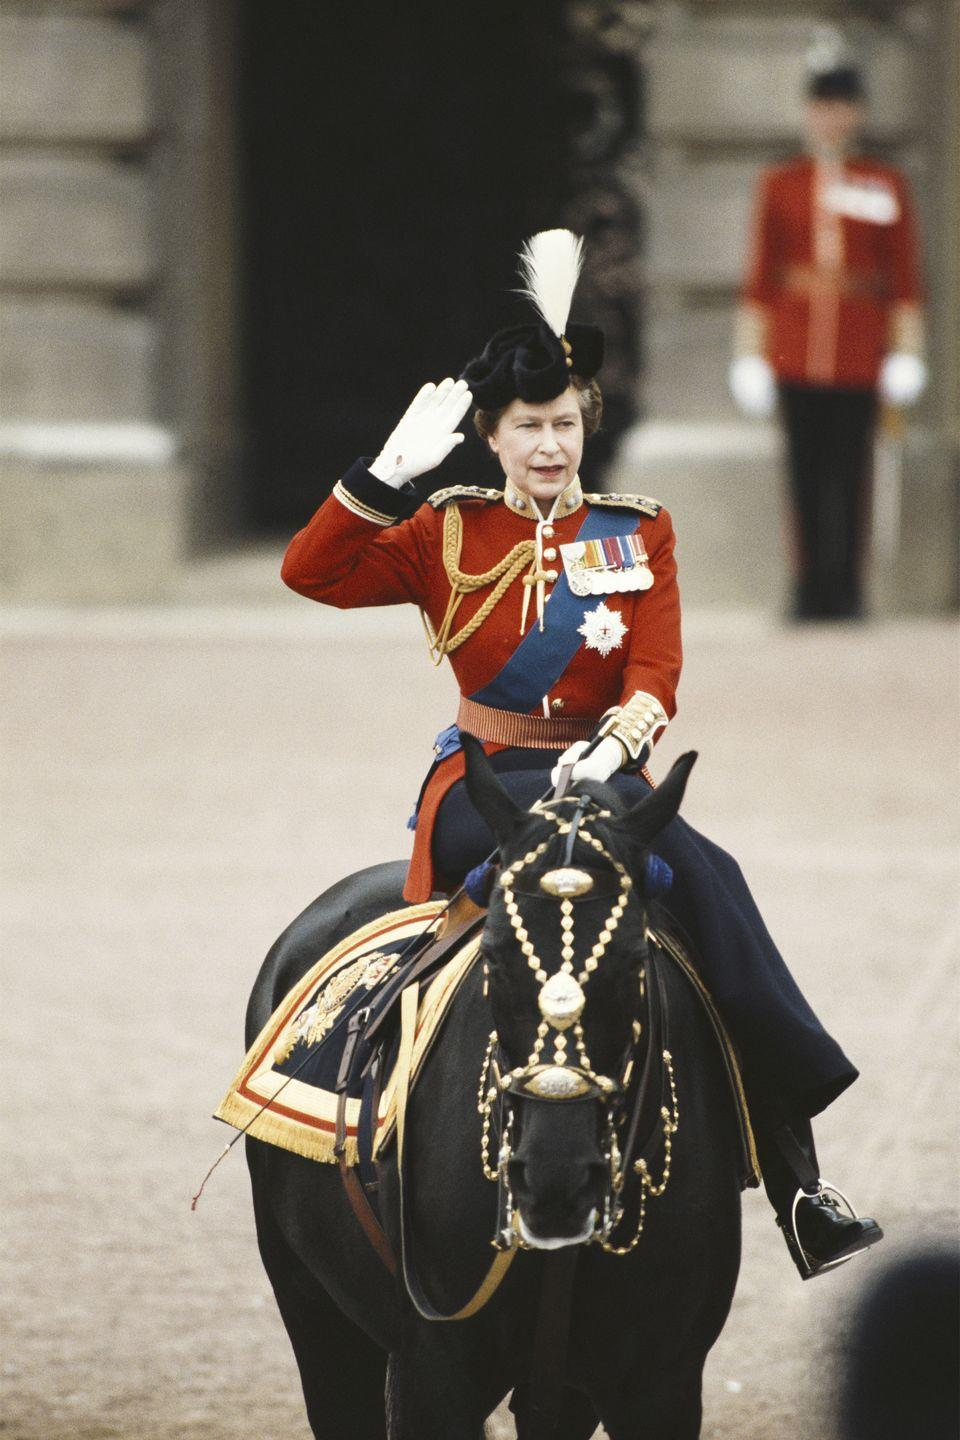 "<p>The queen proves she's a <a href=""https://www.harpersbazaar.com/celebrity/latest/g10021446/queen-elizabeth-rare-photos/?slide=2"" rel=""nofollow noopener"" target=""_blank"" data-ylk=""slk:total badass"" class=""link rapid-noclick-resp"">total badass</a> as she took the salute at the Trooping the Color ceremony outside Buckingham Palace.</p>"